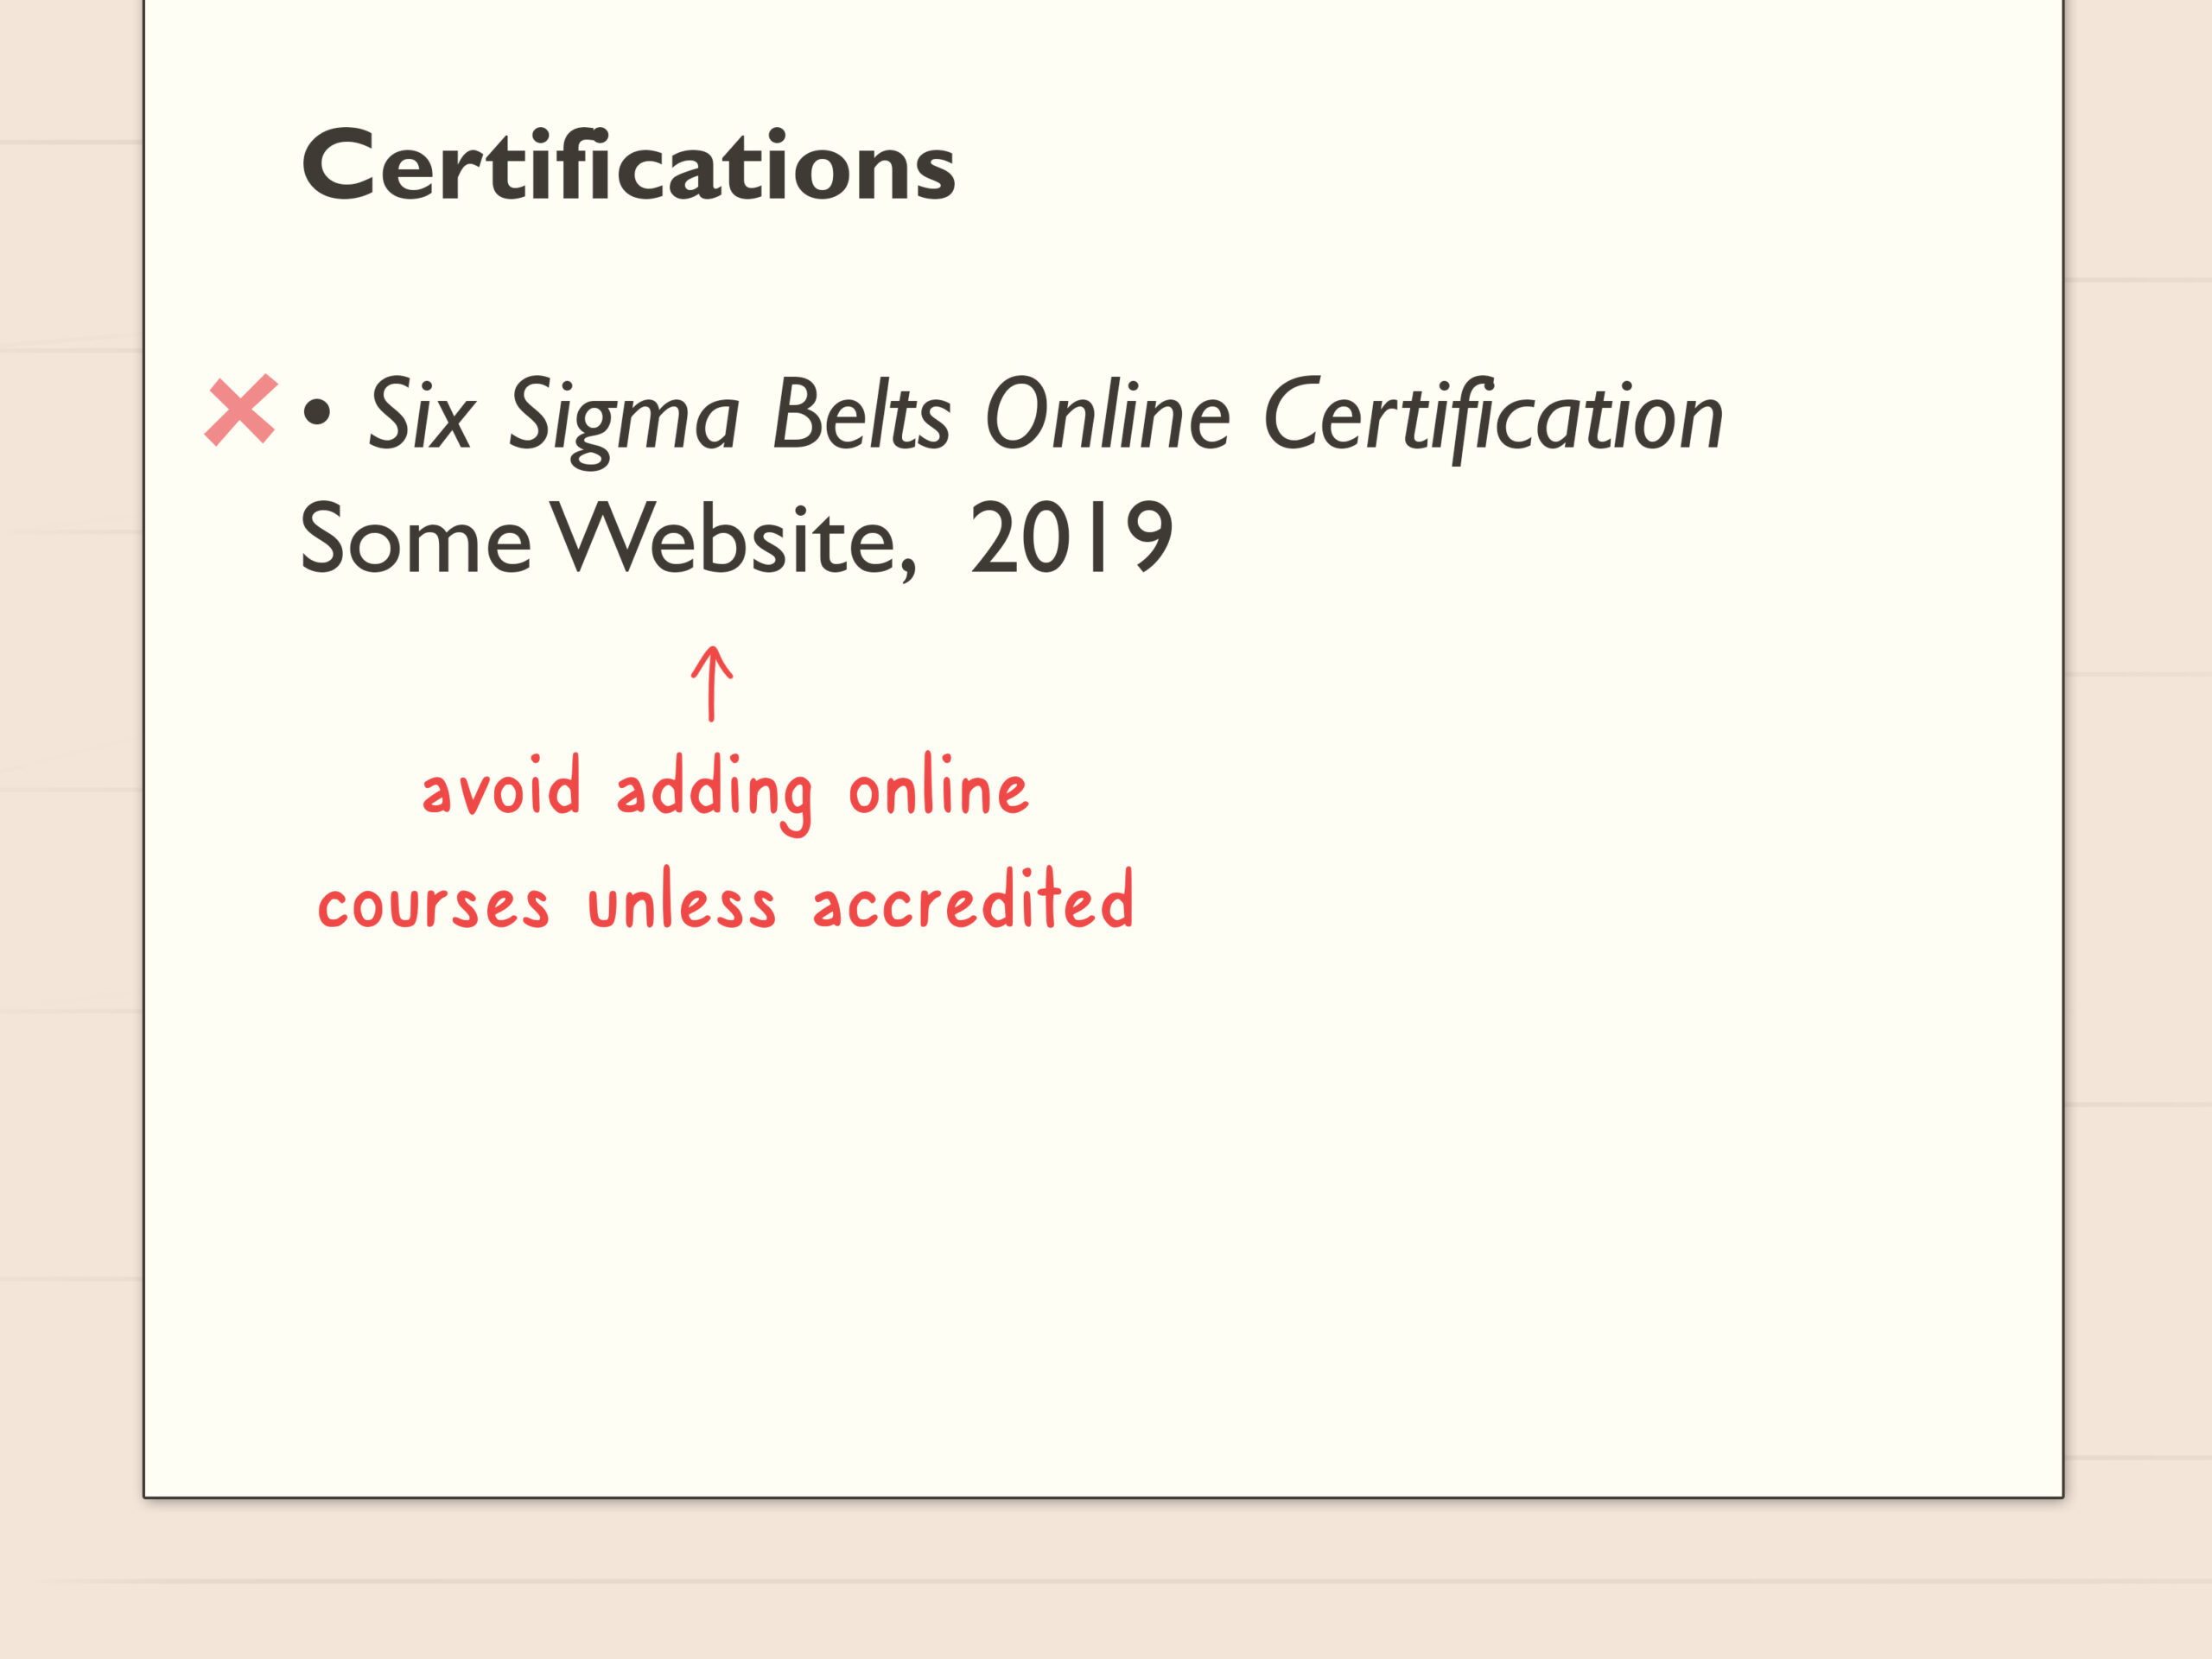 simple ways to certifications resume steps put on step foreign language teacher best font Resume Where To Put Certifications On Resume